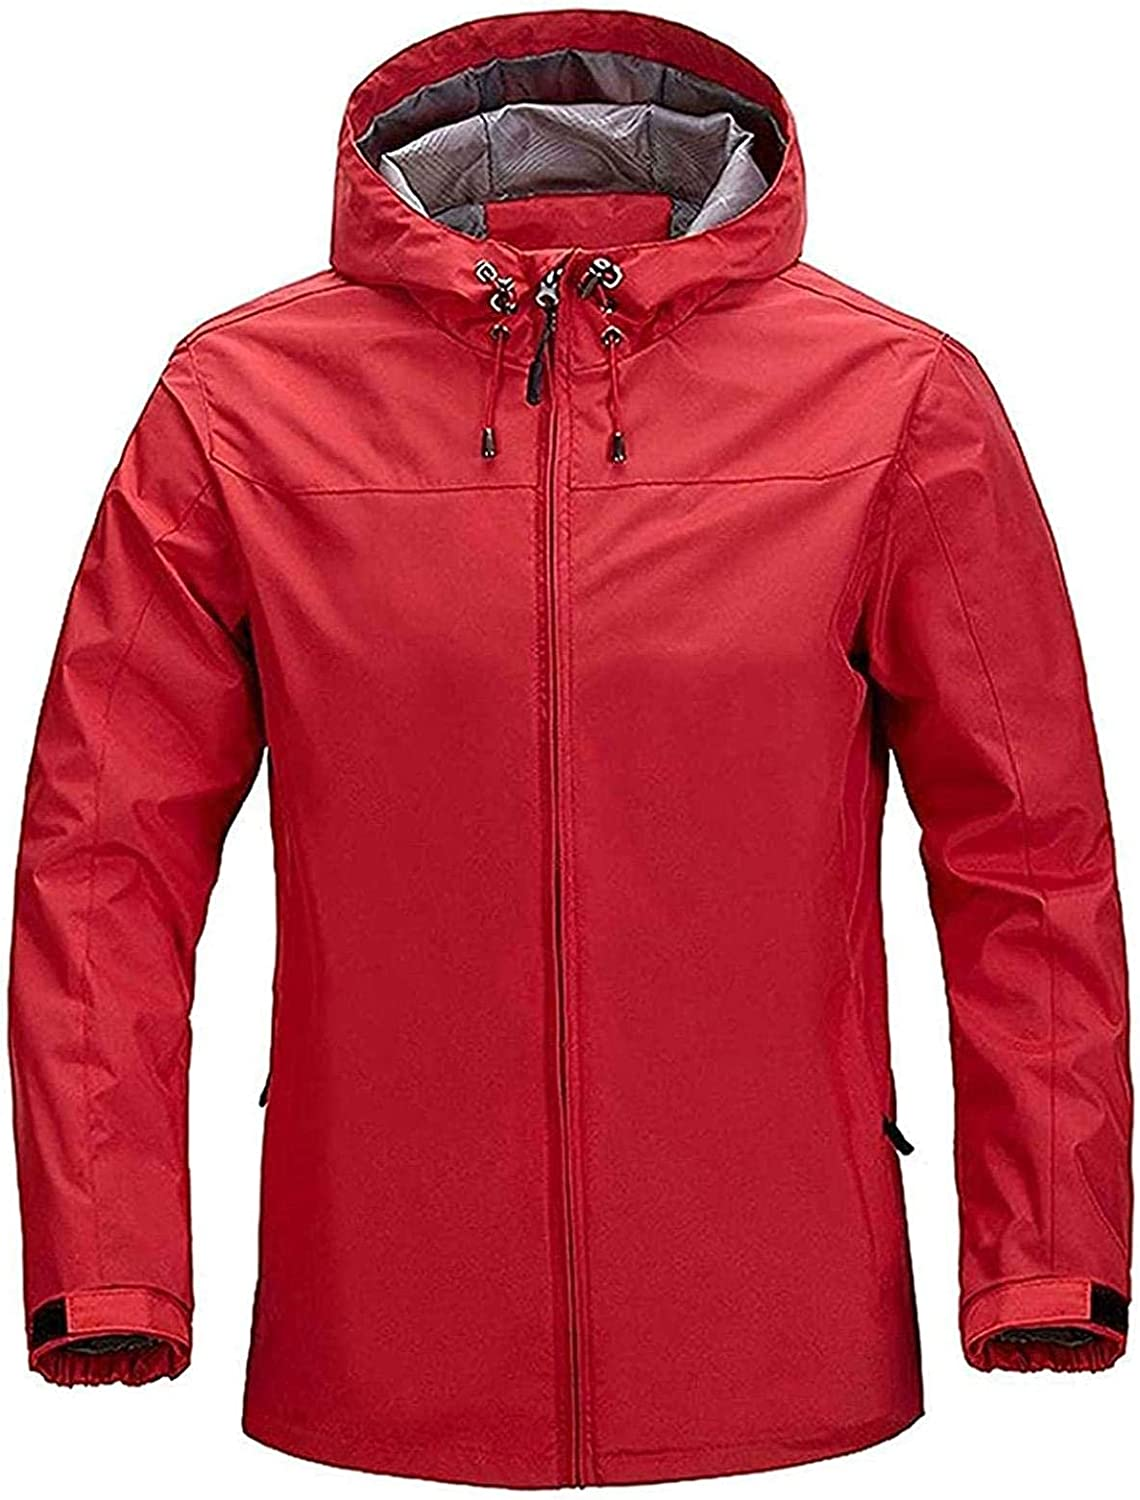 Mens Front-Zip Translated Hooded Waterproof Lightweight Fishing Pocket Suit SEAL limited product